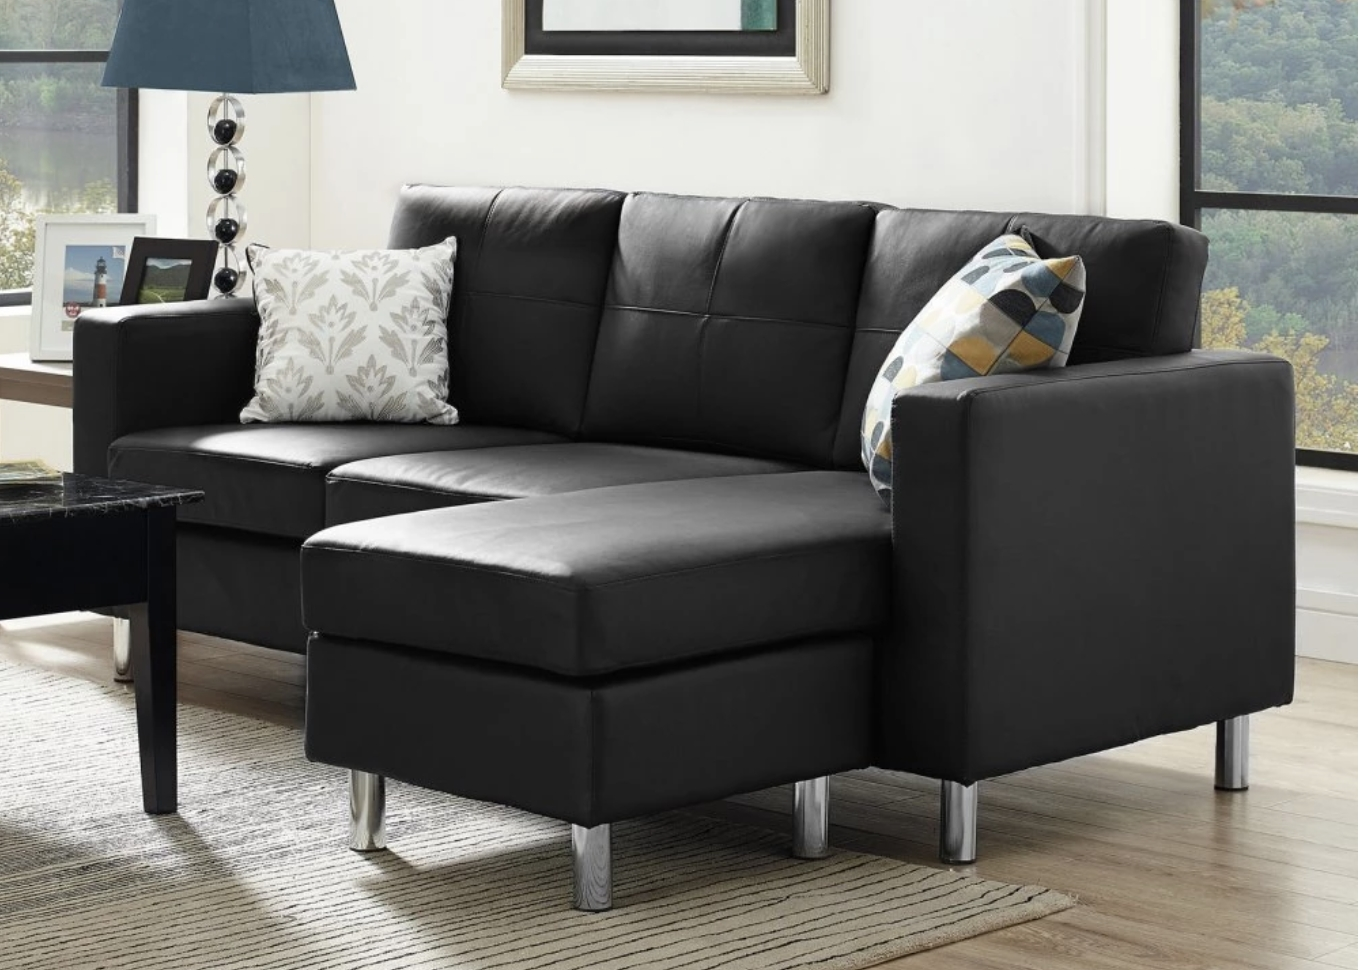 Sectional Sofas For Small Areas Within Well Known 75 Modern Sectional Sofas For Small Spaces (2018) (View 17 of 20)